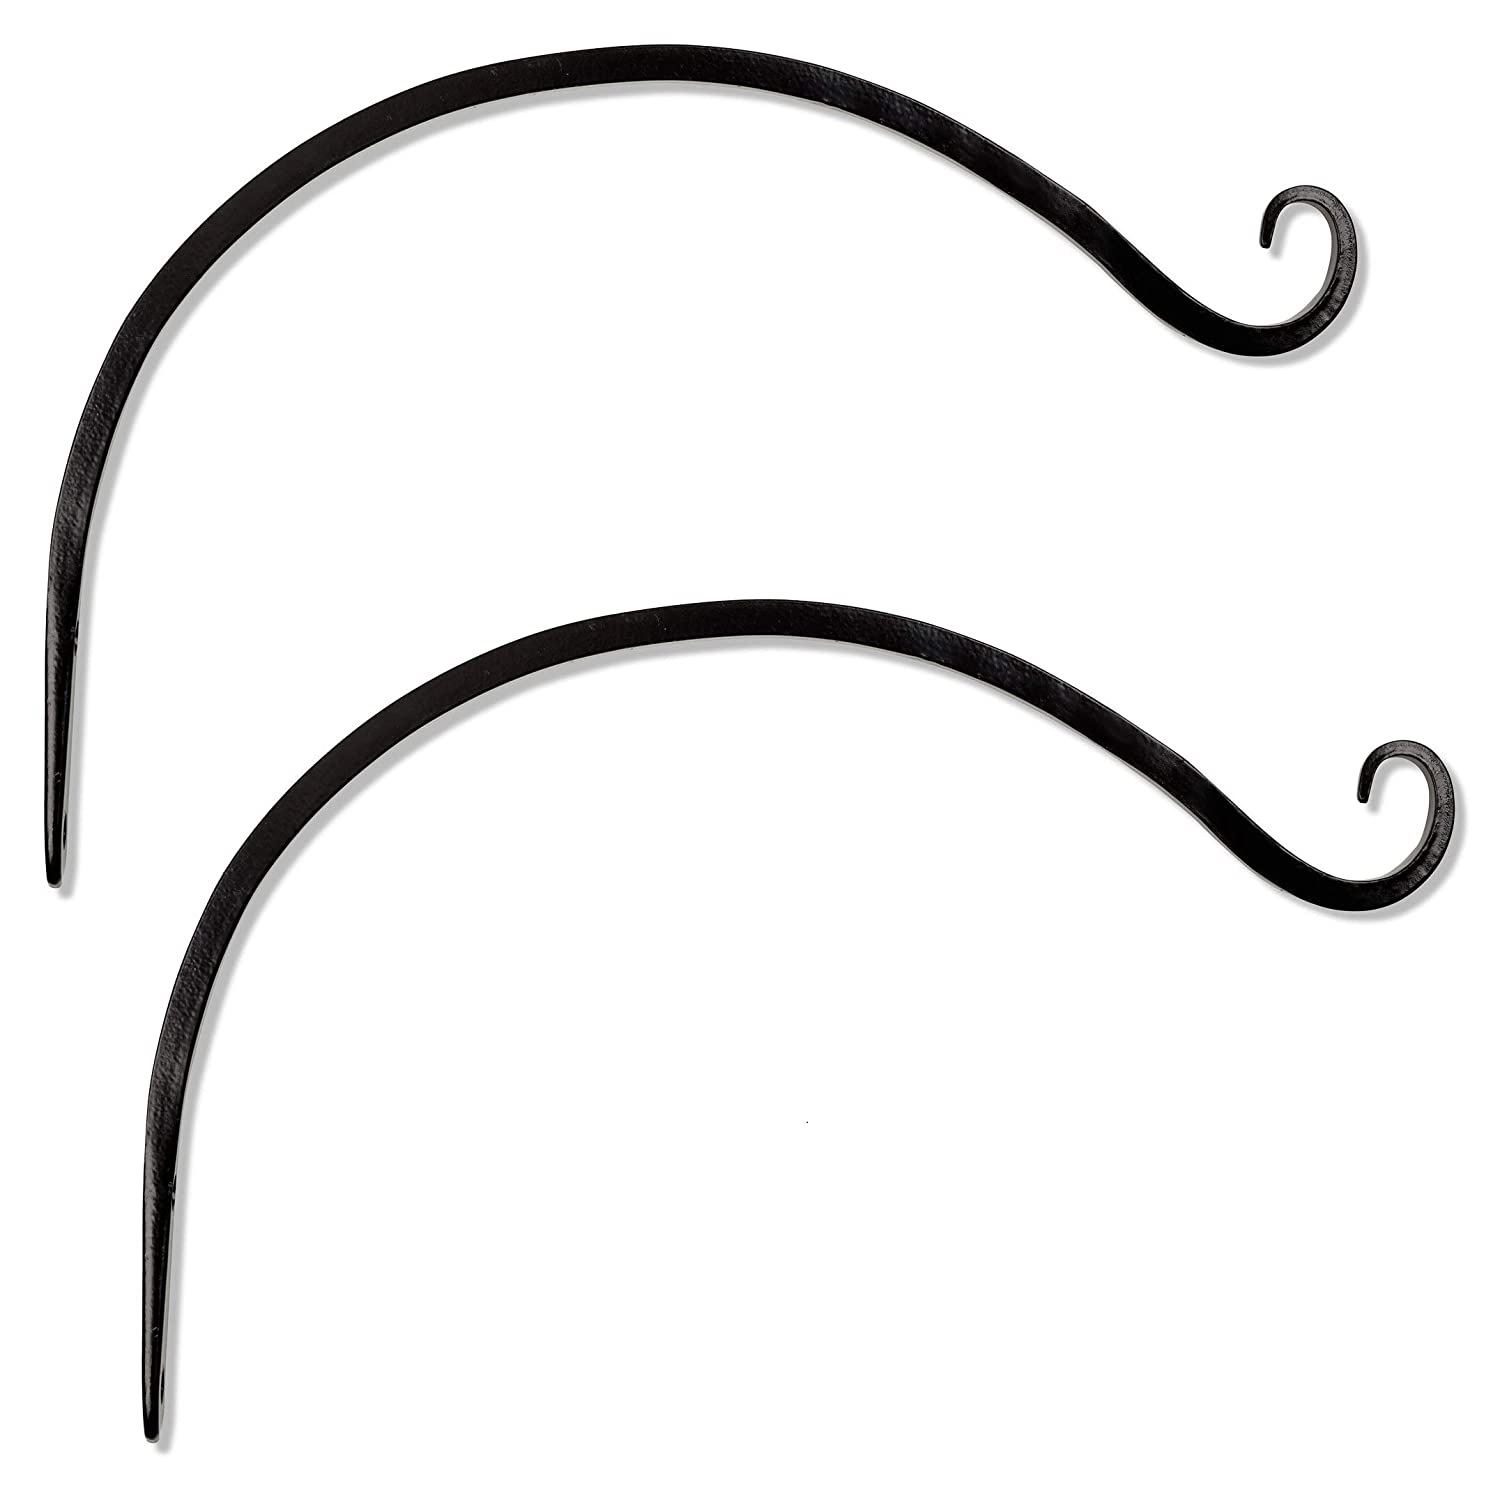 GrayBunny GB-6820B Hand Forged Curved Hook 14 inch Black 2-Pack for Bird Feeders Planters Lanterns Wind Chimes As Wall Brackets and More!